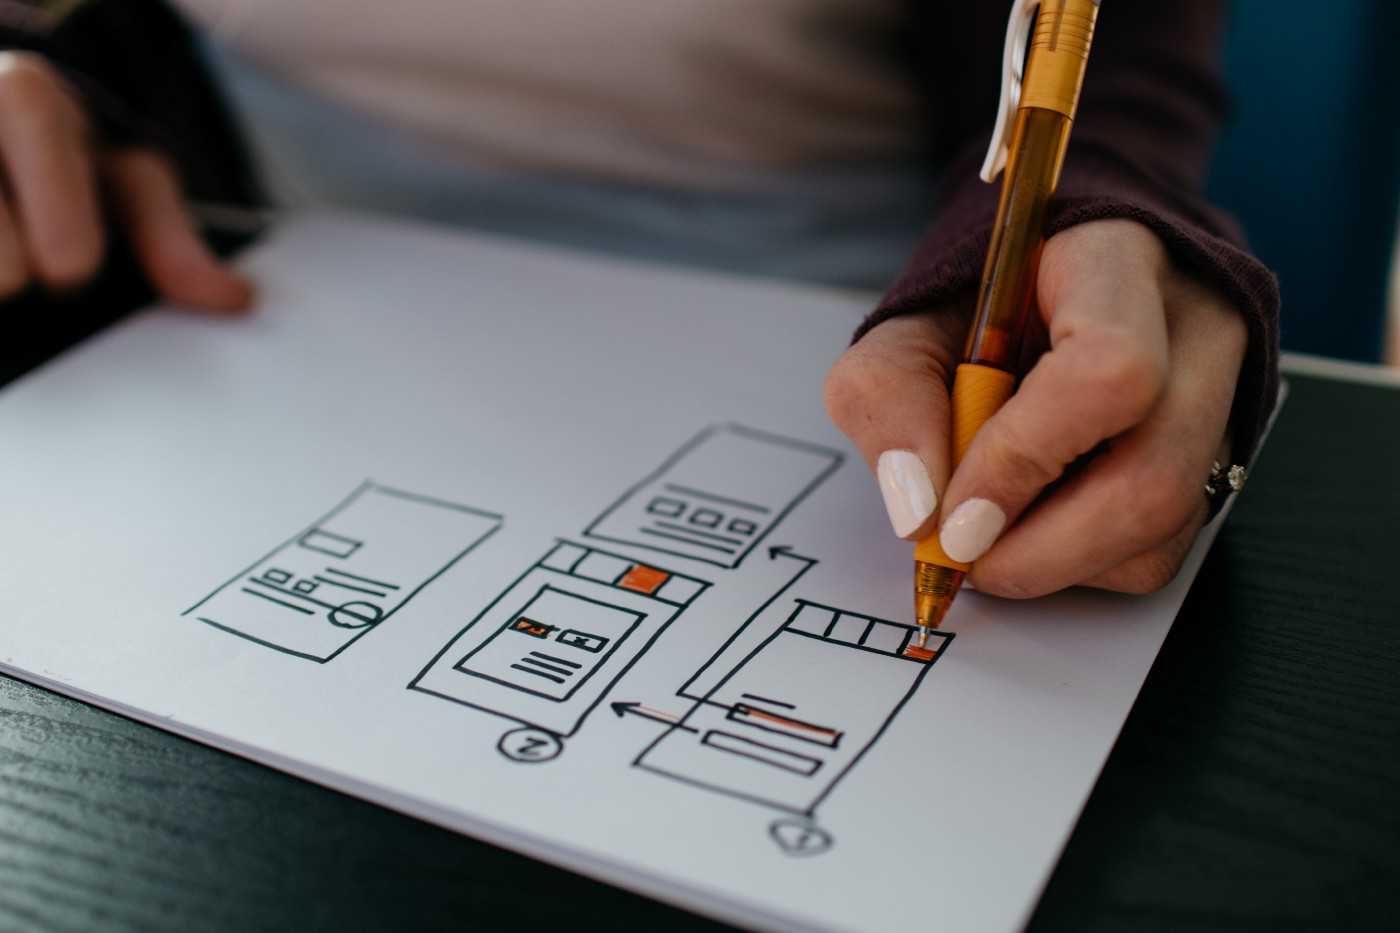 A designer's hand holding a pen, drawing wireframes of a user interface.